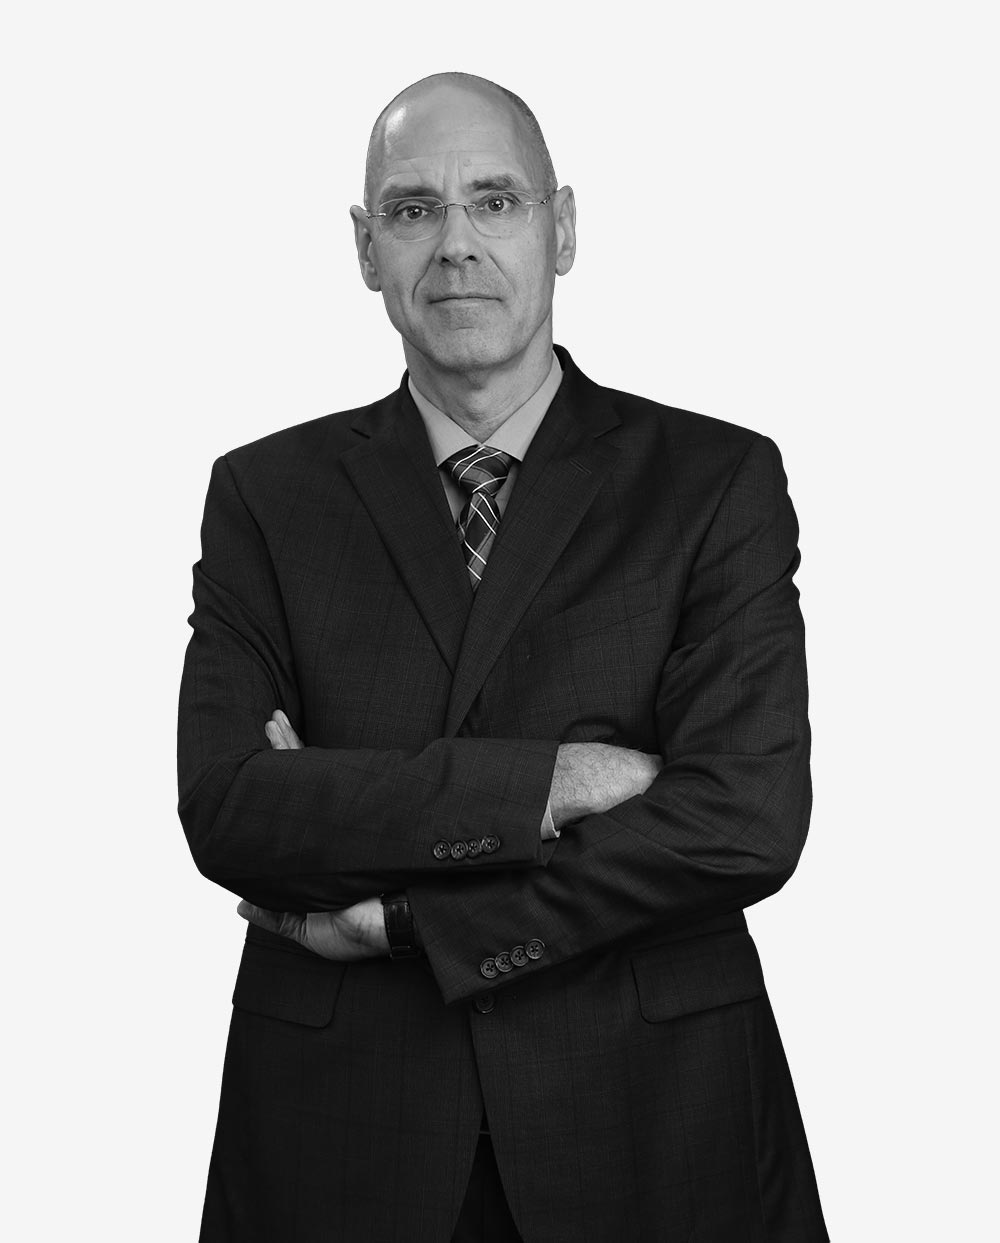 Me Alain Barrette, attorney | Team member of Barrette & Associates